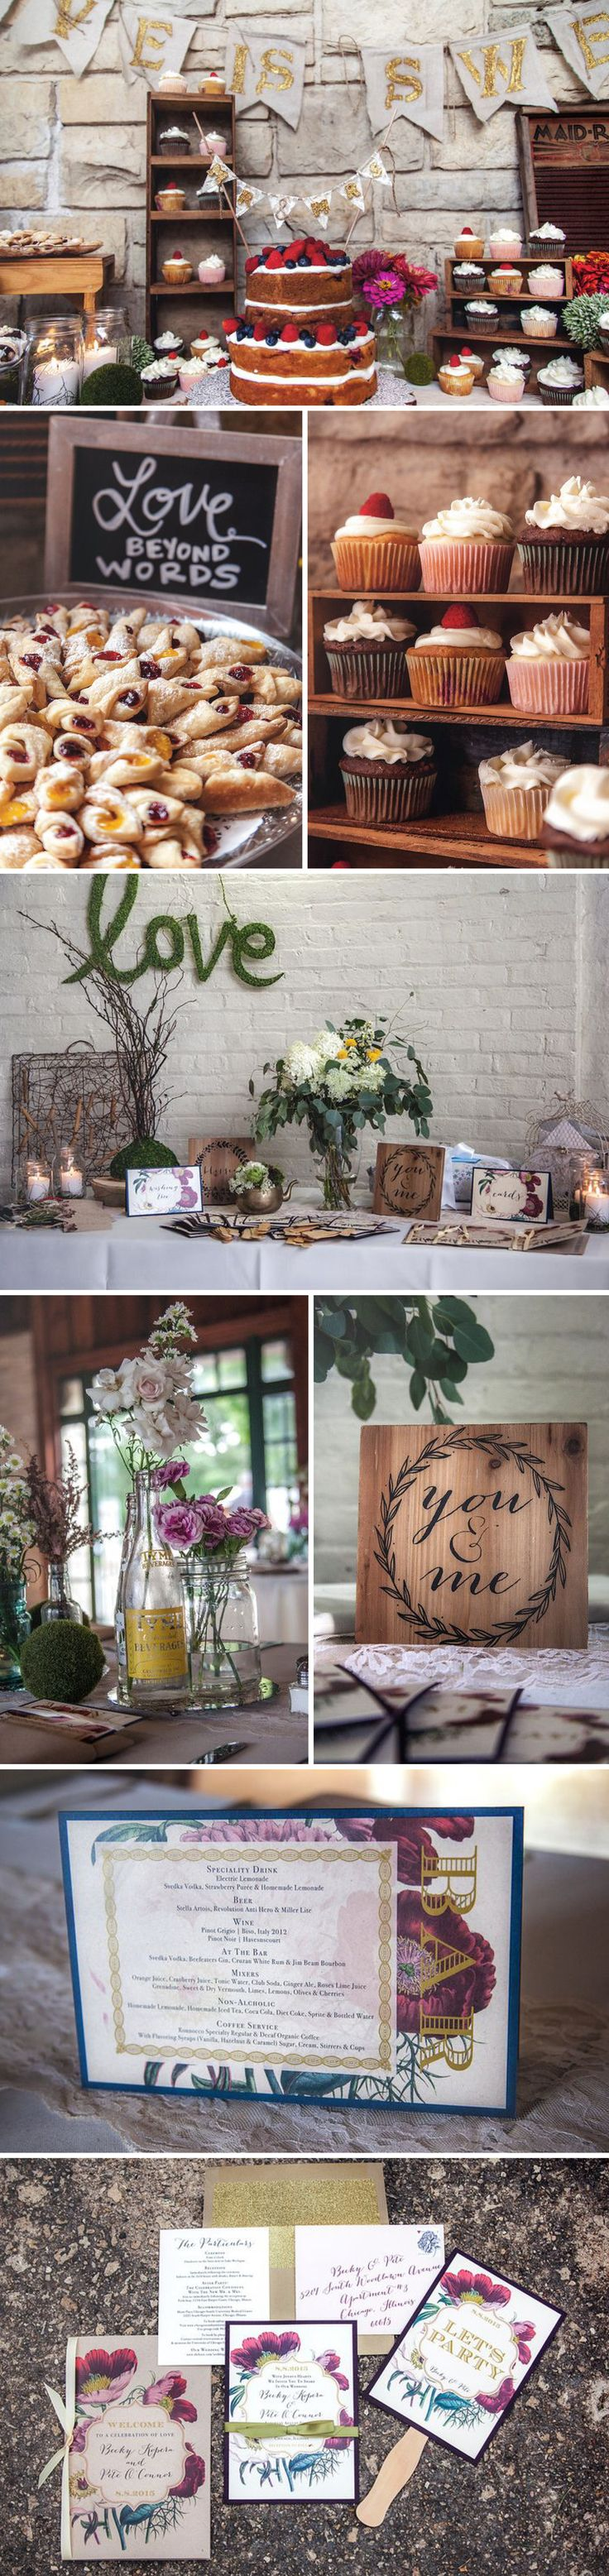 Becky + Pete | Rustic/Boho Inspired Chicago Outdoor Wedding with tons of D.I.Y. Details.